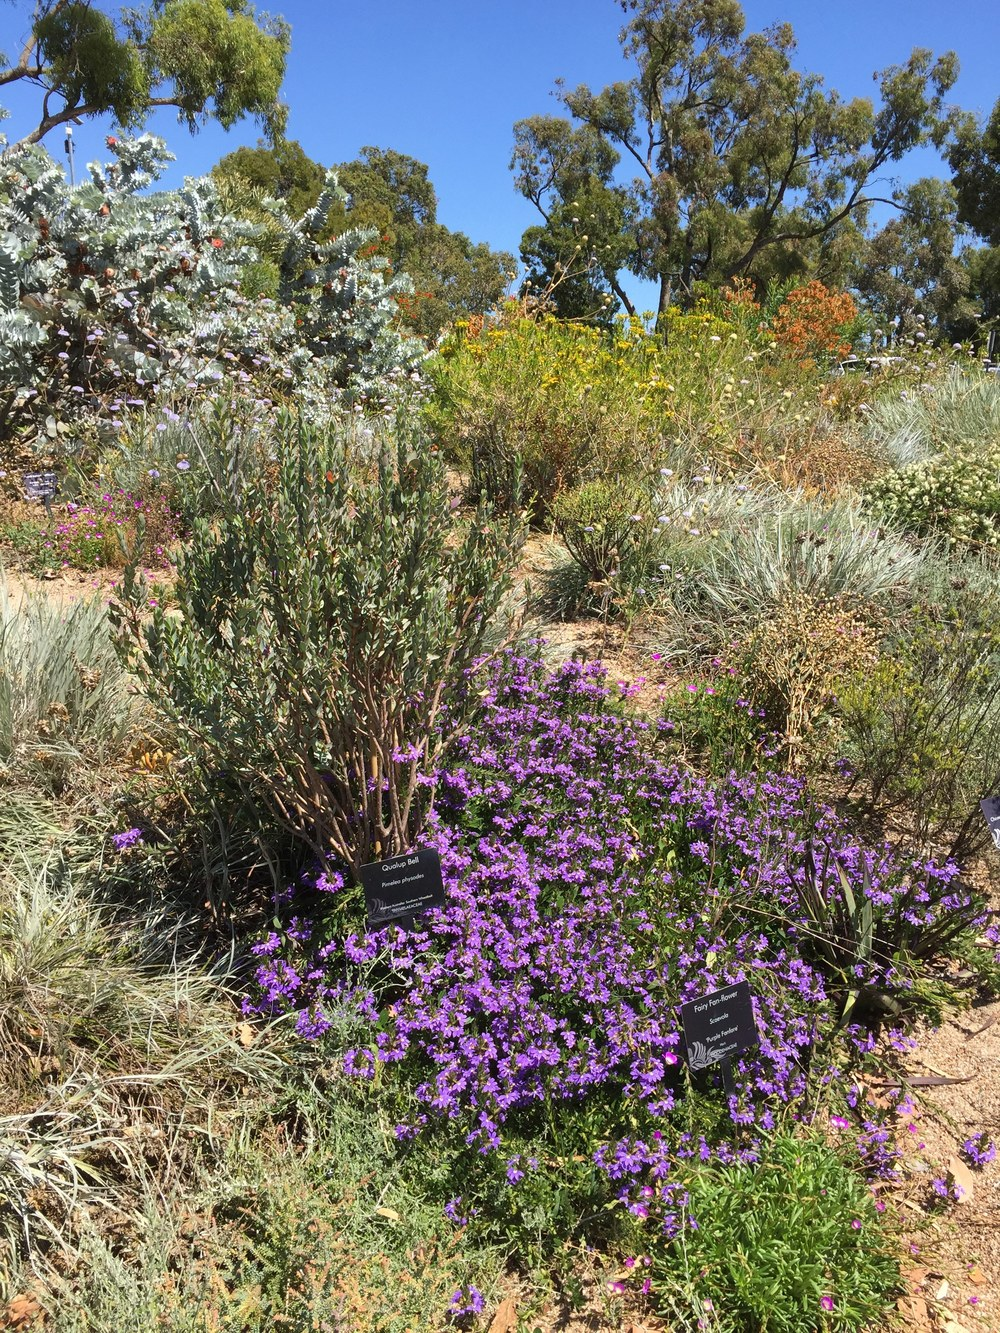 Some of the native plants in bloom in the Kings Park botanical garden in Perth, Western Australia.